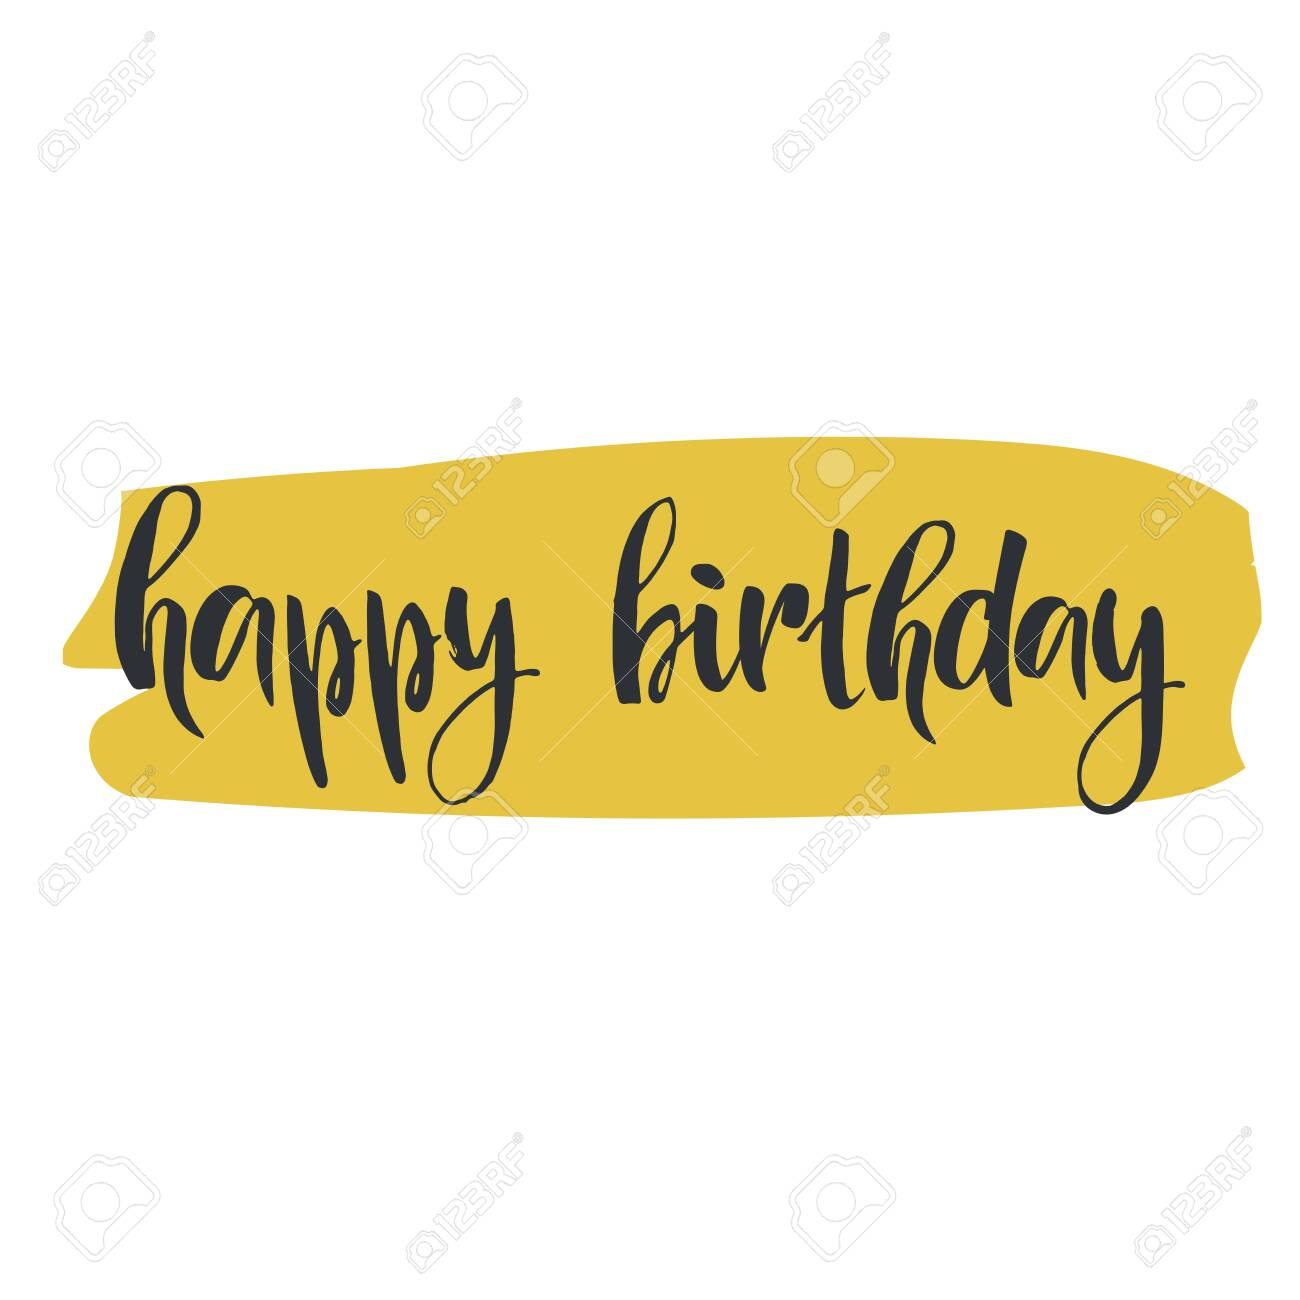 Happy Birthday Hand Drawn Lettering Element For Your Design Royalty Free Cliparts Vectors And Stock Illustration Image 138193419